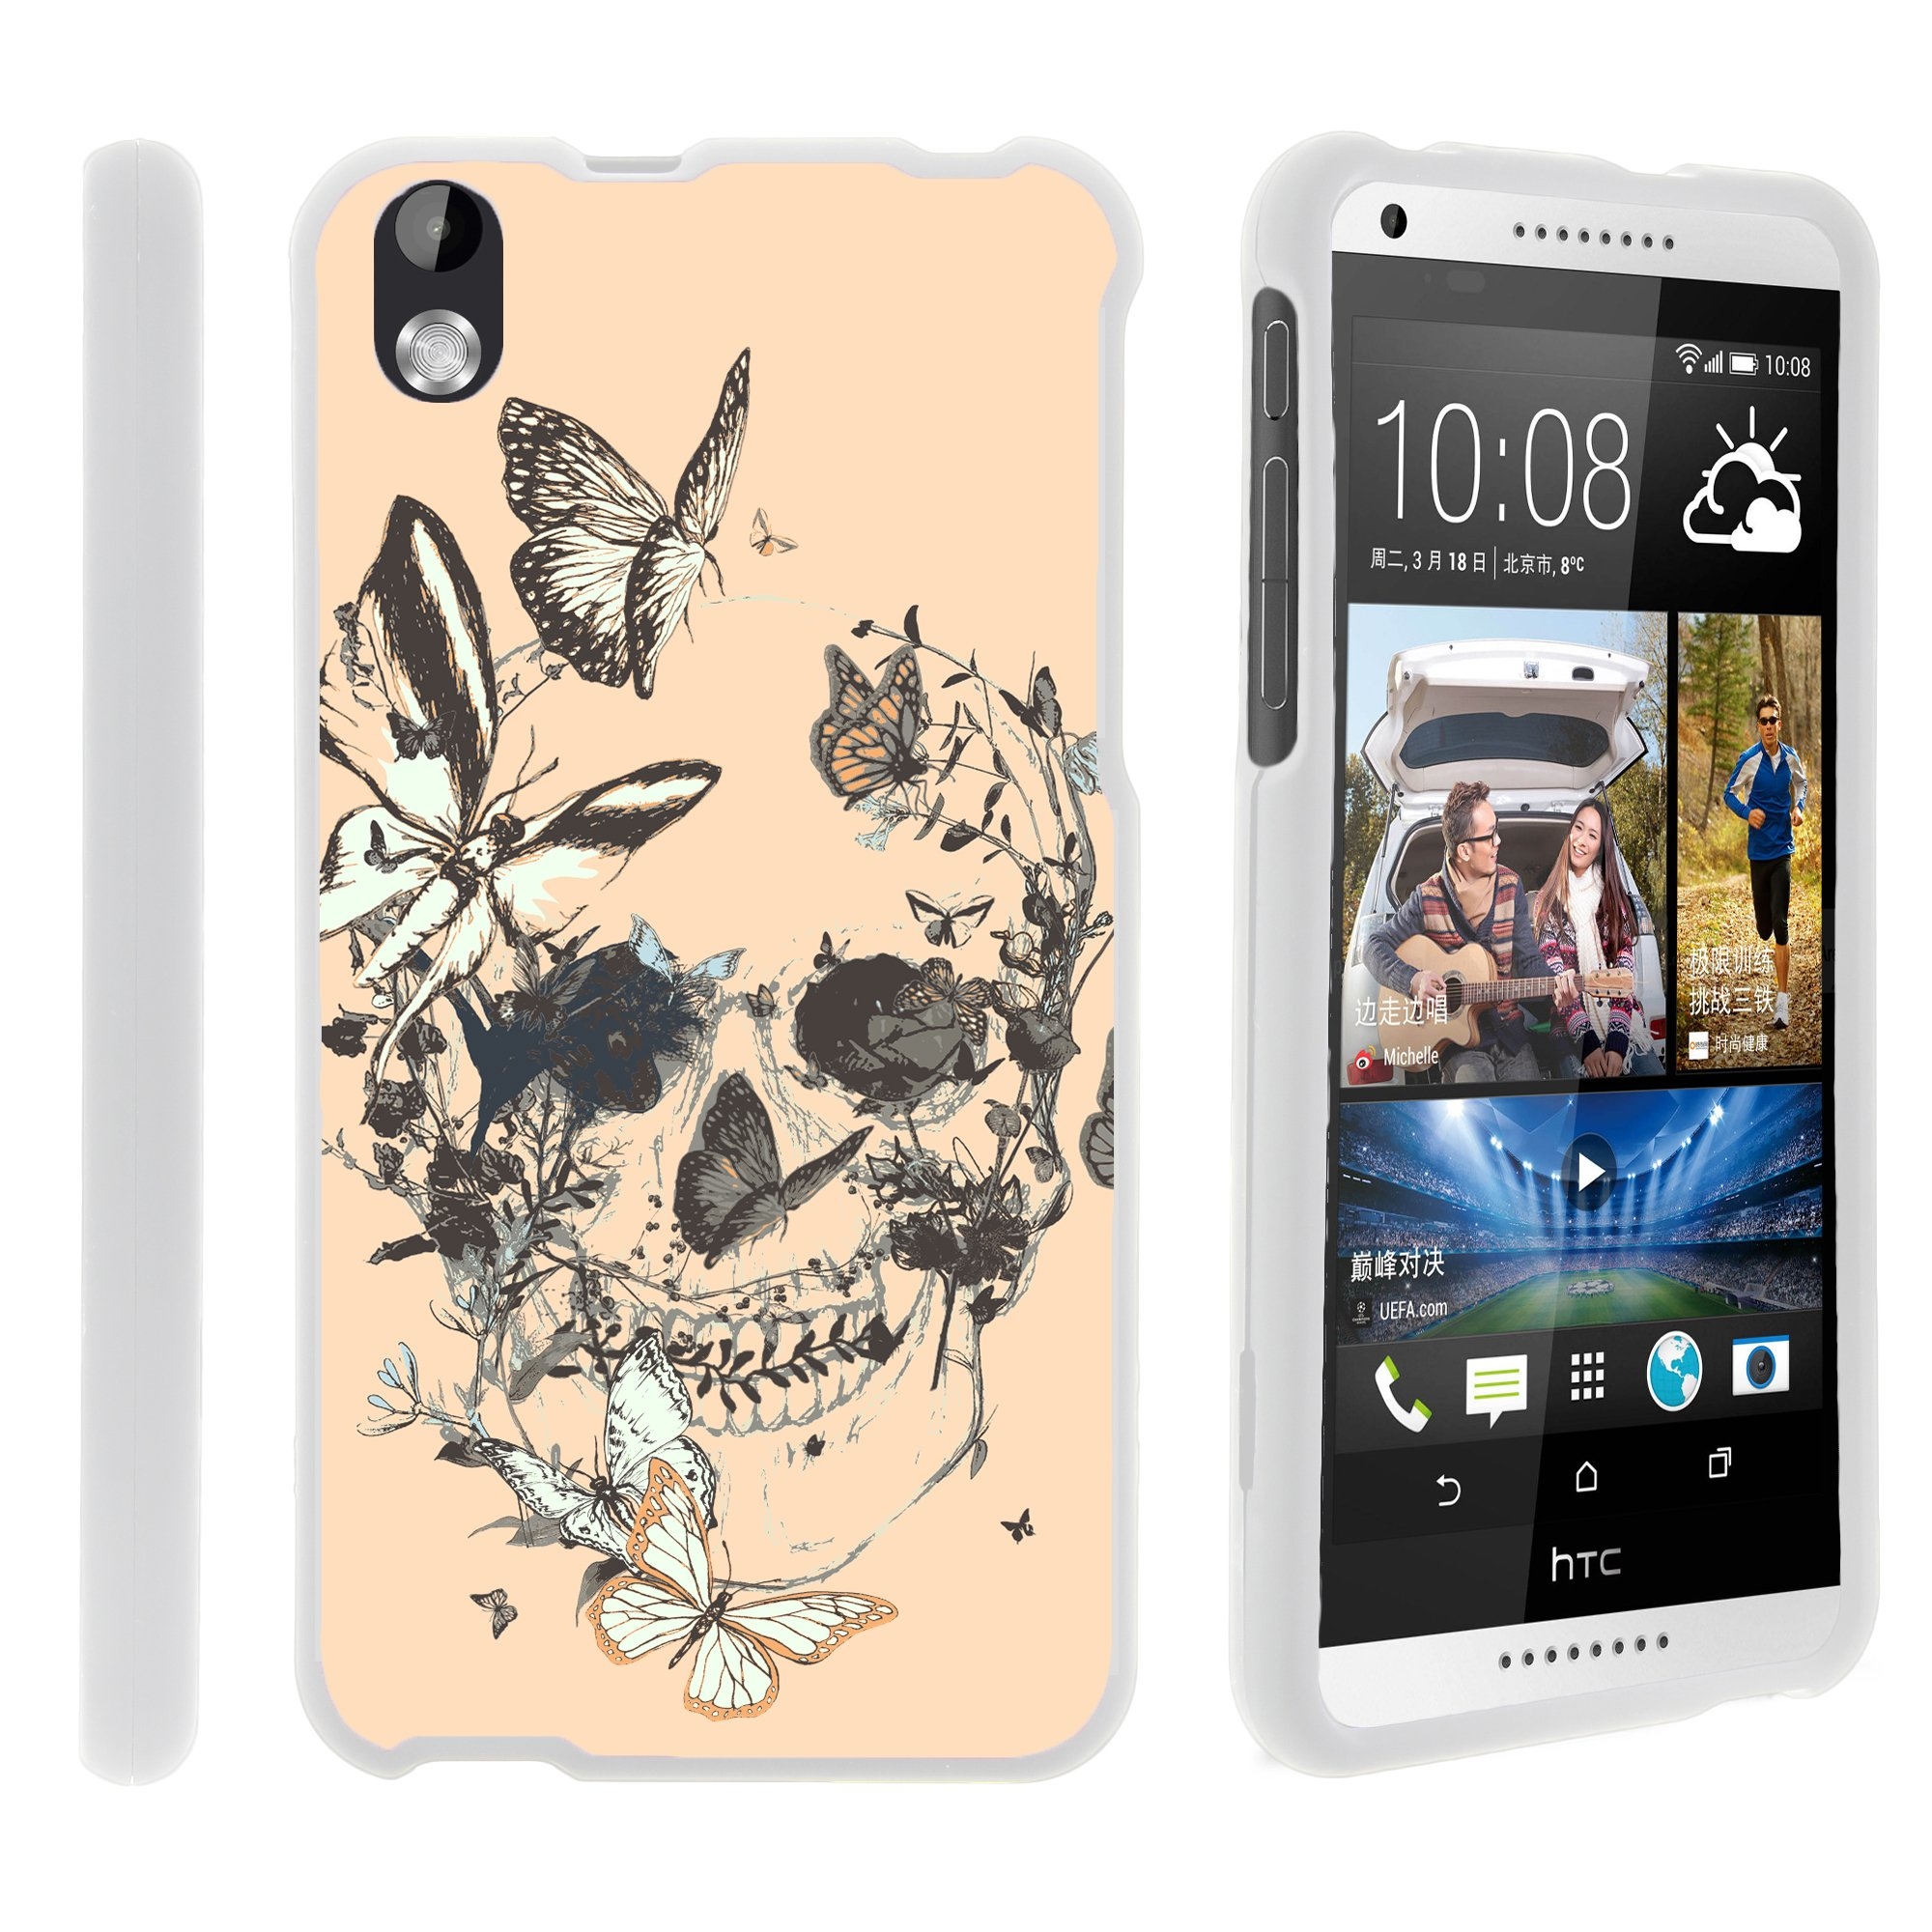 HTC Desire 816, [SNAP SHELL][White] Hard White Plastic Case with Non Slip Matte Coating with Custom Designs - Fruity Rose Pattern